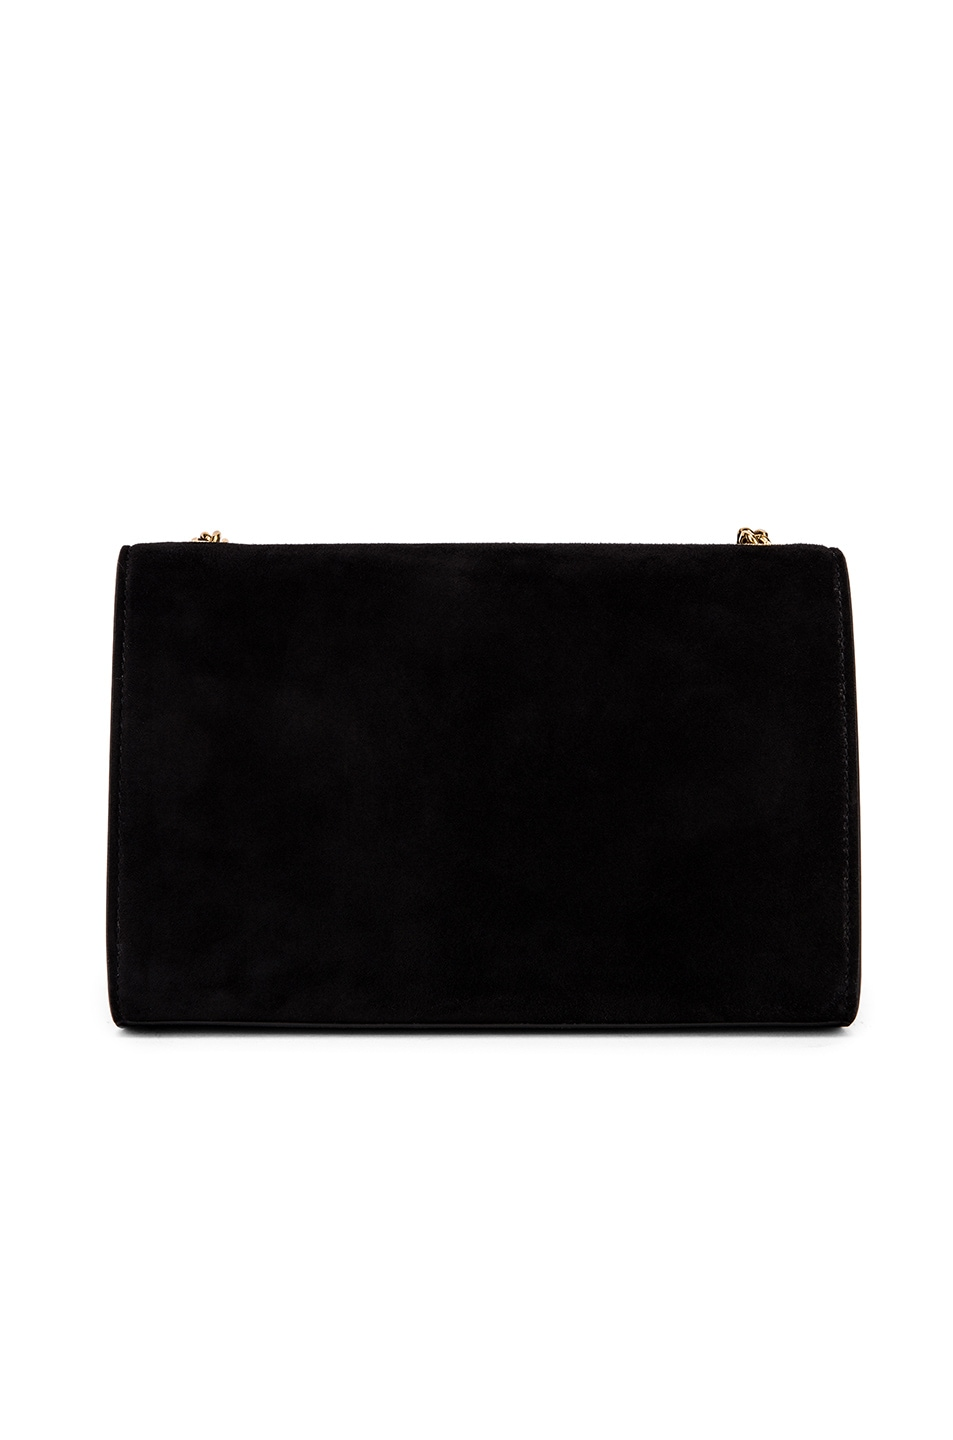 Image 3 of Saint Laurent Small Monogramme Kate Bag in Black